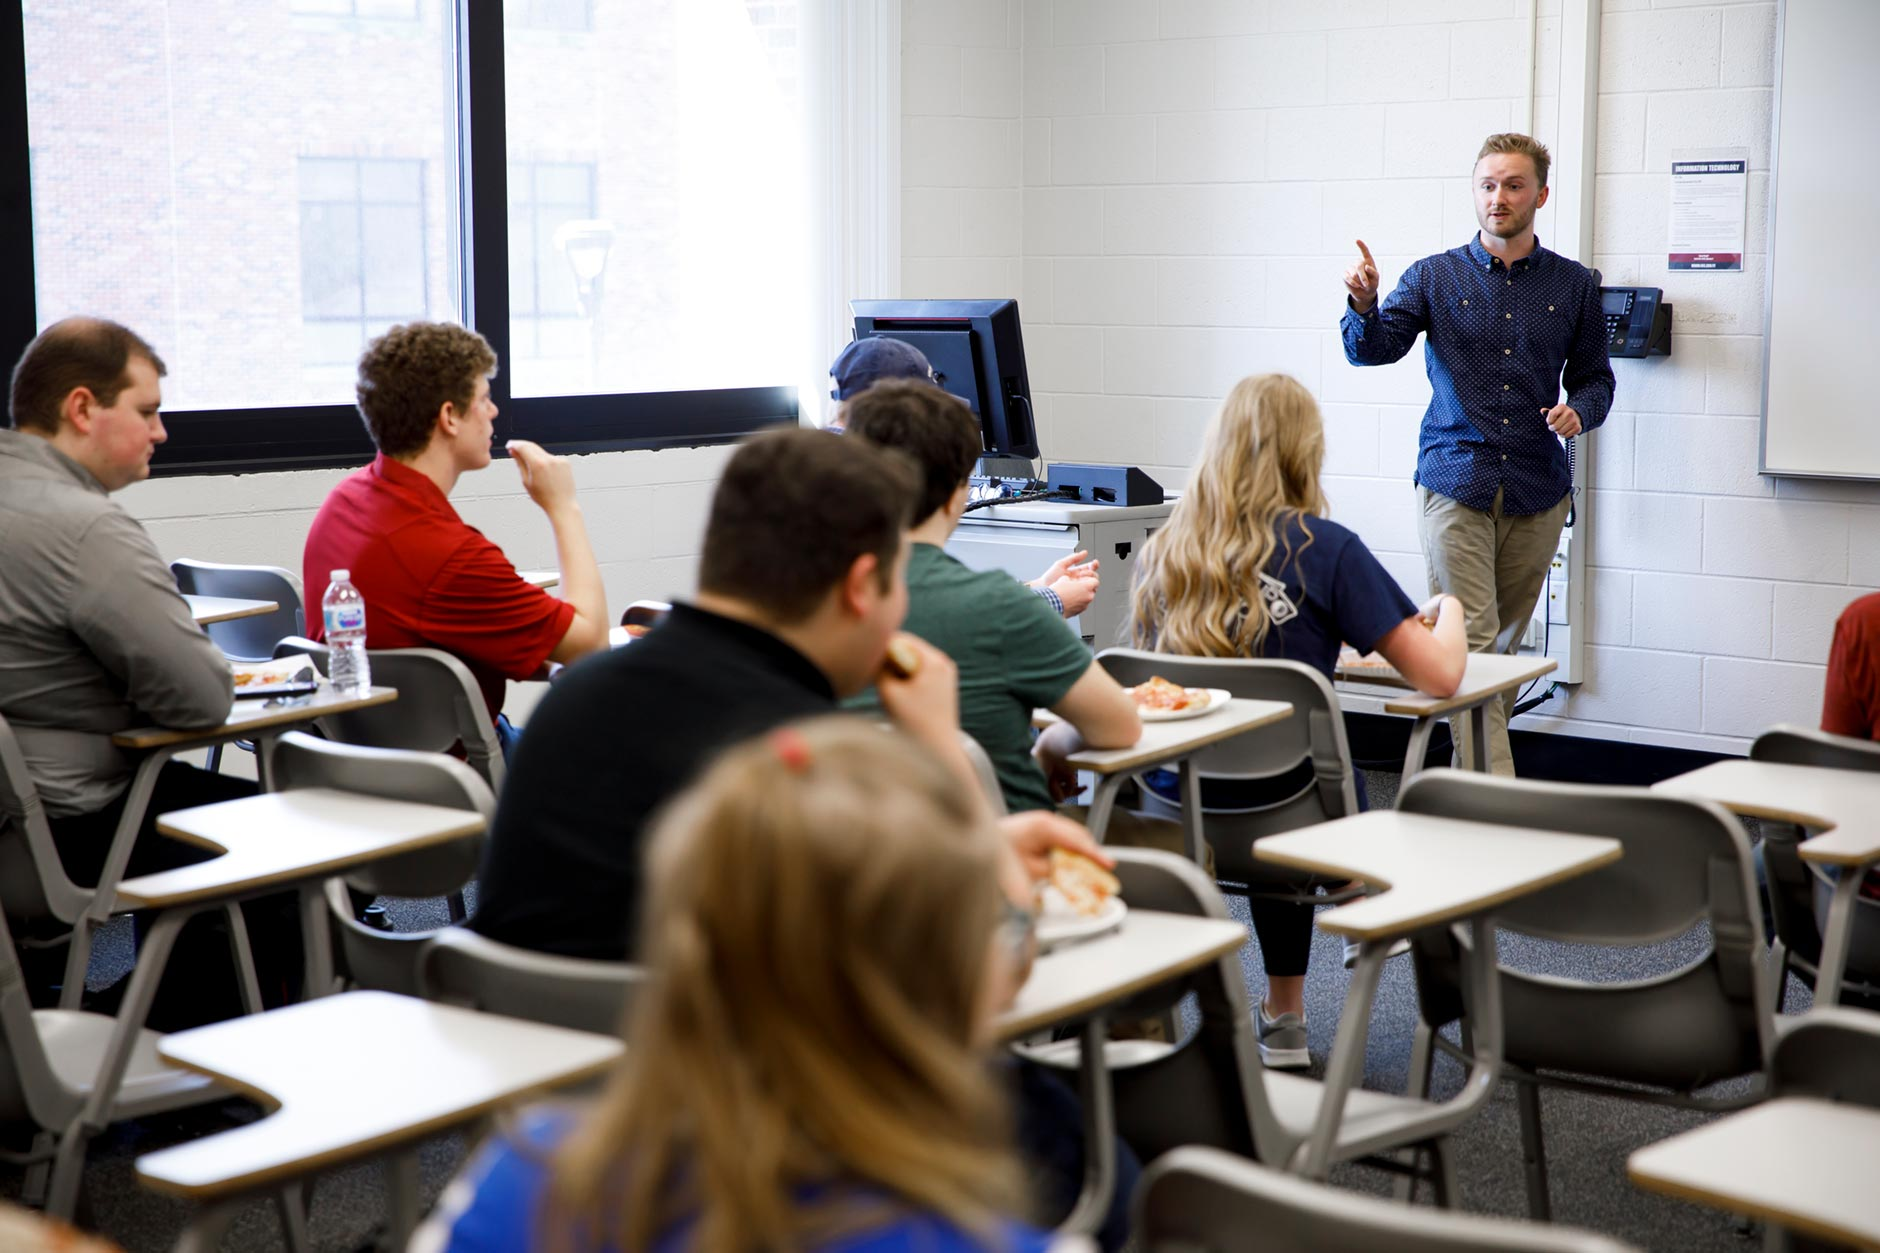 Roger Howard, a graduating senior at IU Southeast, directs a meeting of the Indiana University Southeast College Republicans on campus on Tuesday, April 3, 2018. (James Brosher/IU Communications)